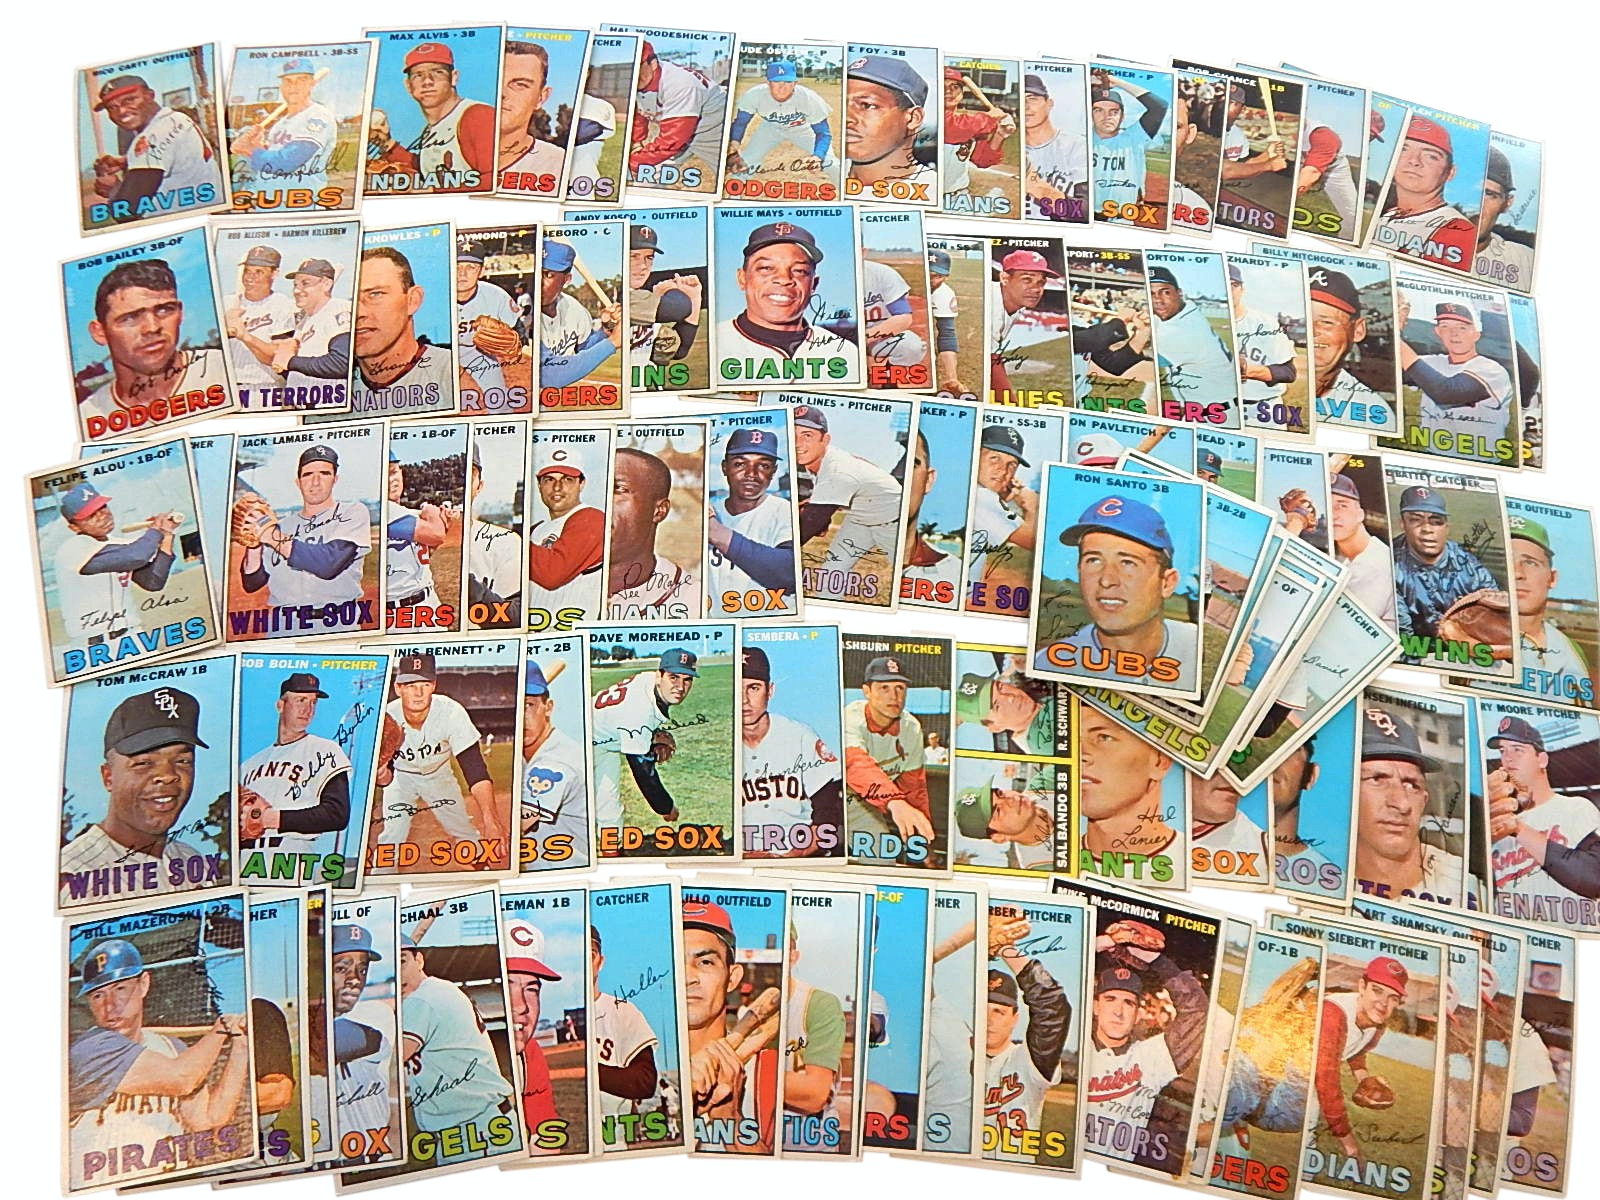 1967 Topps Baseball Card Collection with Santo, Mays, Killebrew and More